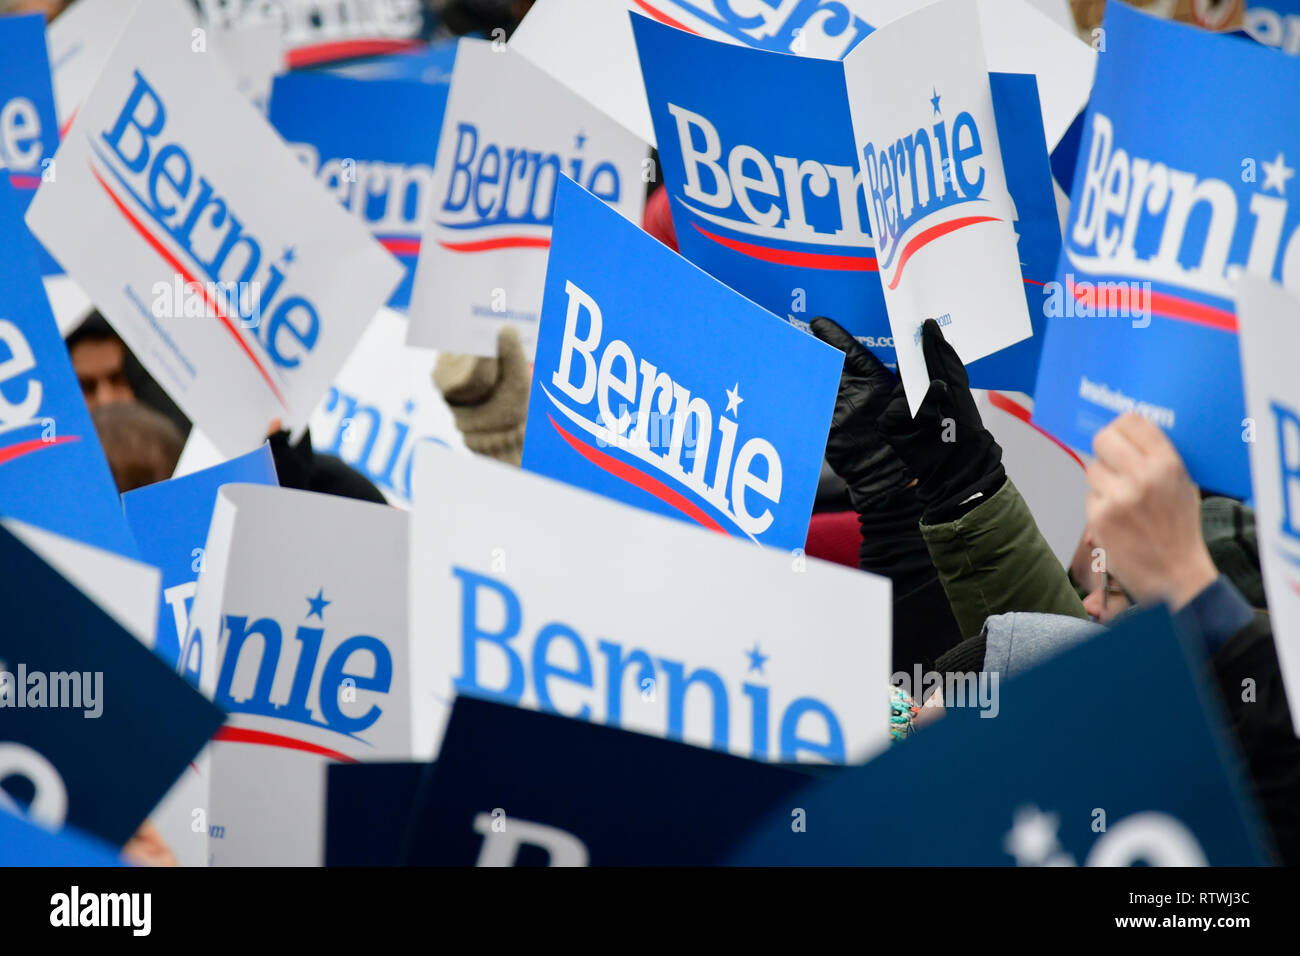 New York, NY, USA. 2nd March, 2019. Supporters of Bernie Sanders hold up signs as the Independent US Senator from Vermont kicks-off his campaign for the 2020 U.S. Presidential Elections on a Democratic ticket at a rally at Brooklyn College, in Brooklyn, NY on March 2, 2019. Credit: OOgImages/Alamy Live News - Stock Image